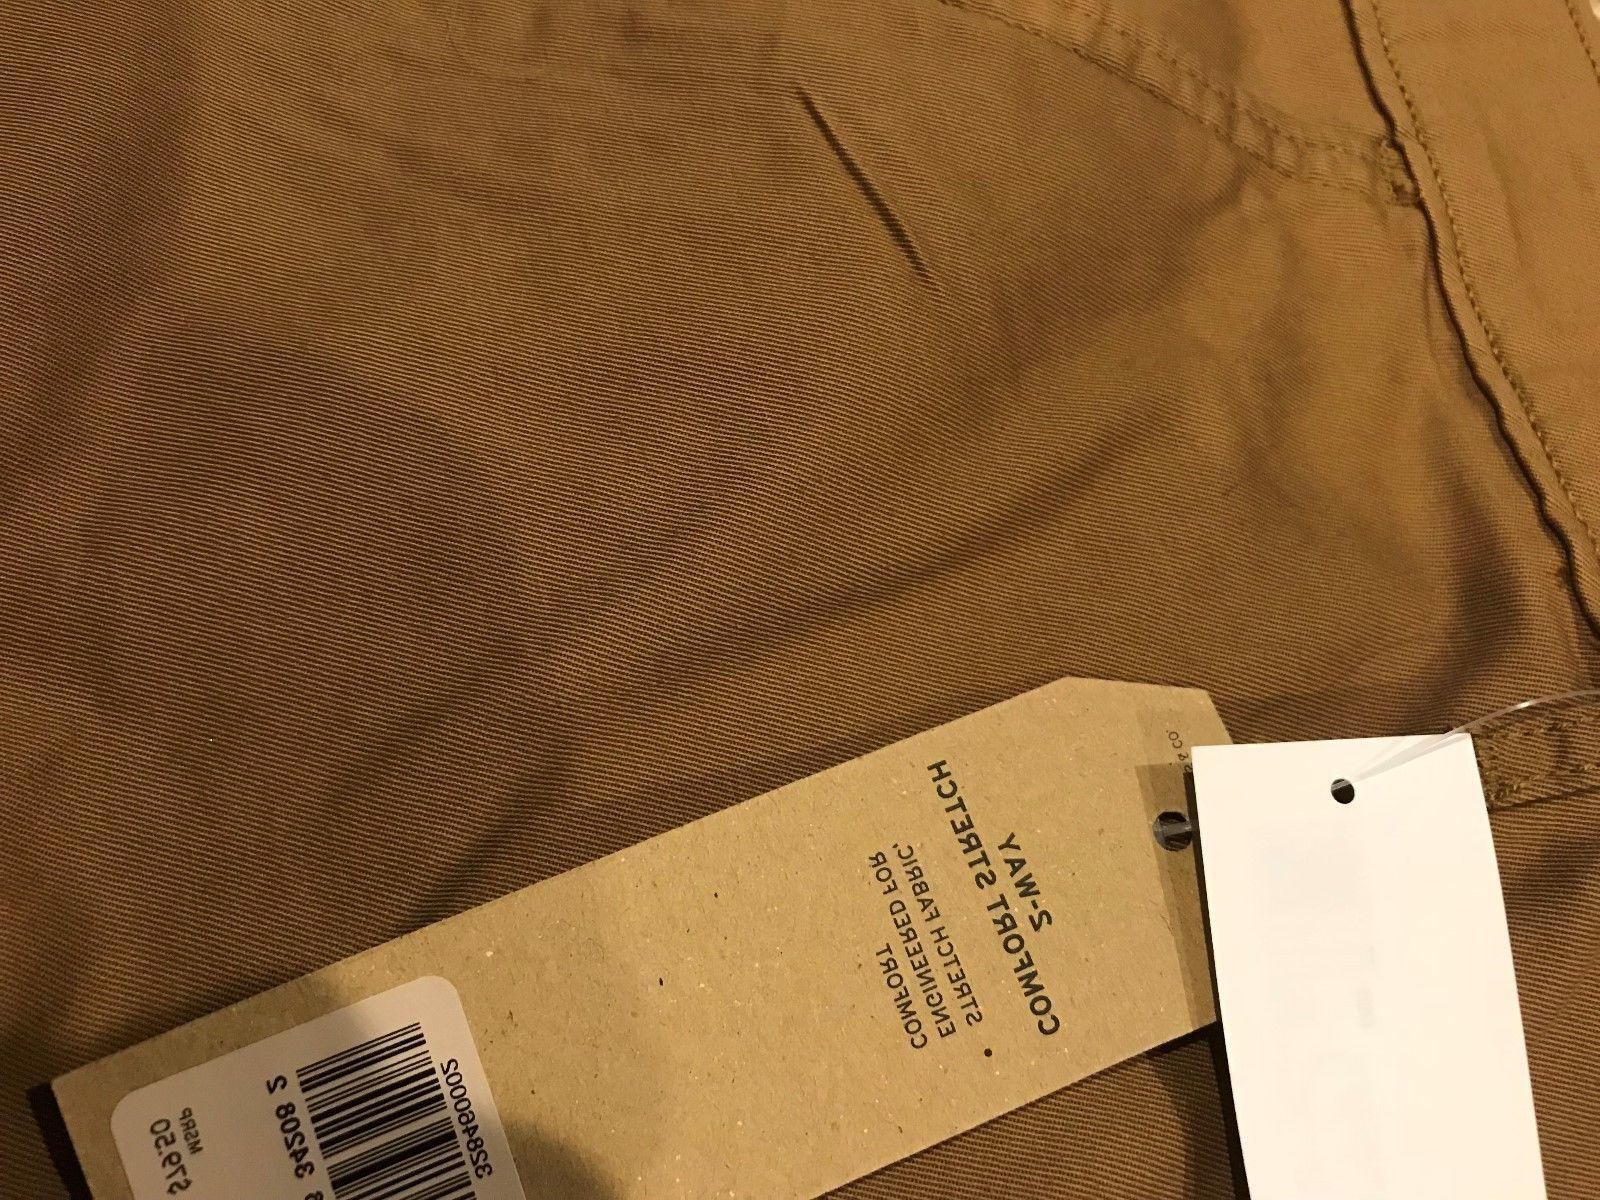 NWT LEVI'S ATHLETIC FIT W/STRETCH PANTS RT$79